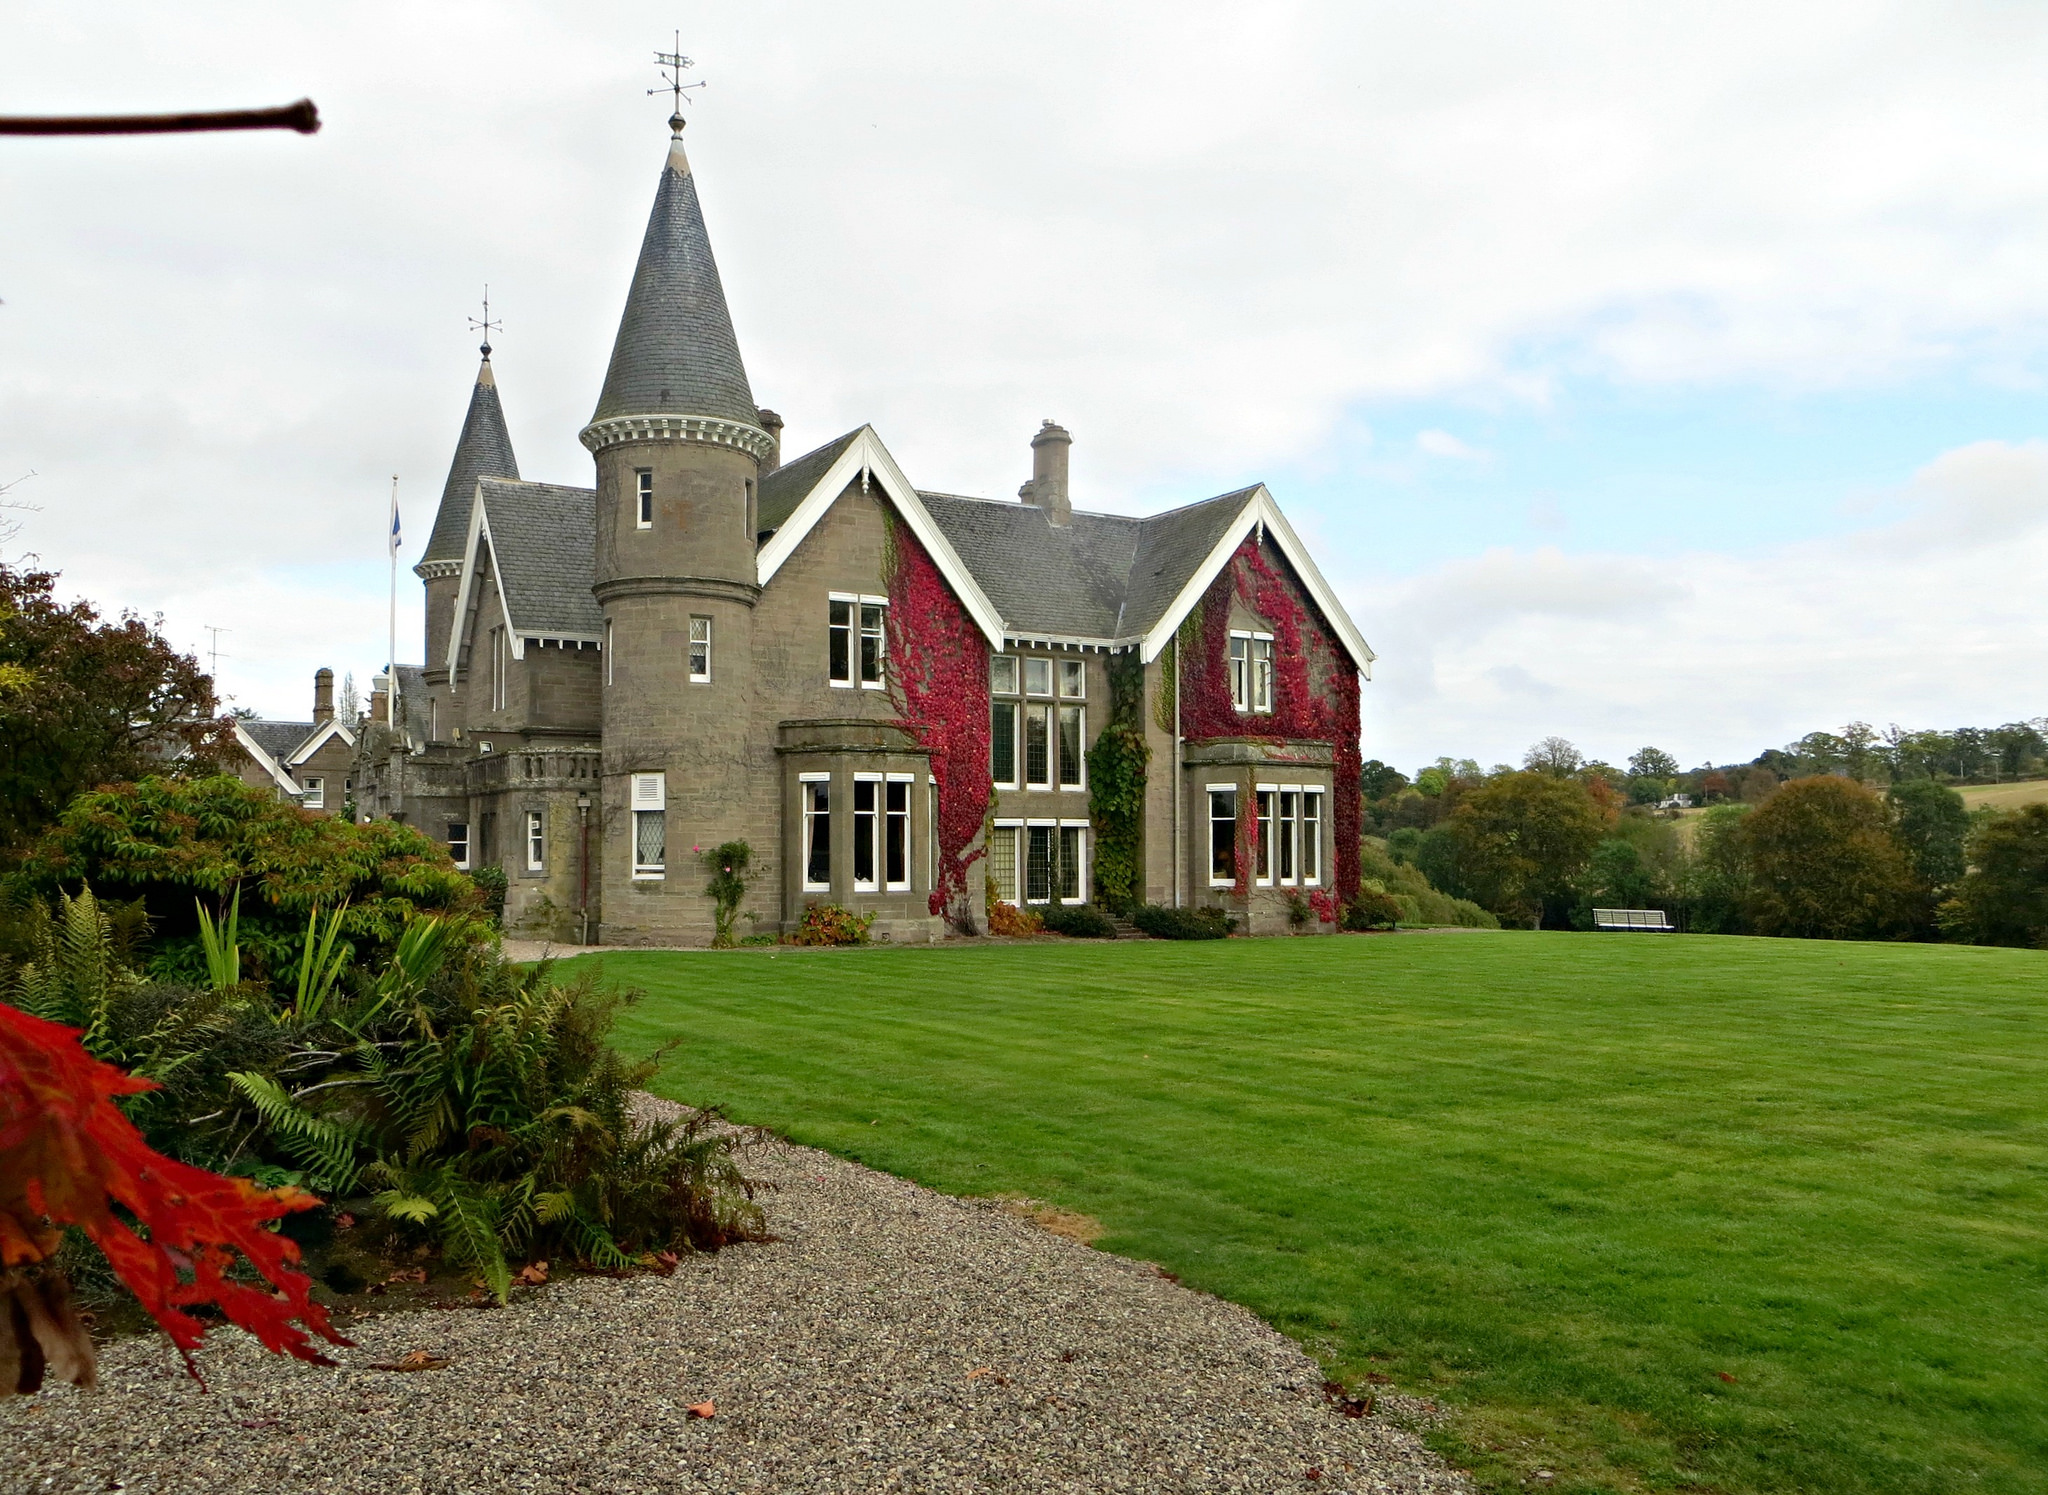 Famous amongst salmon fishers, Ballathie Country House Hotel on the River Tay provides fantastic accommodation, and food